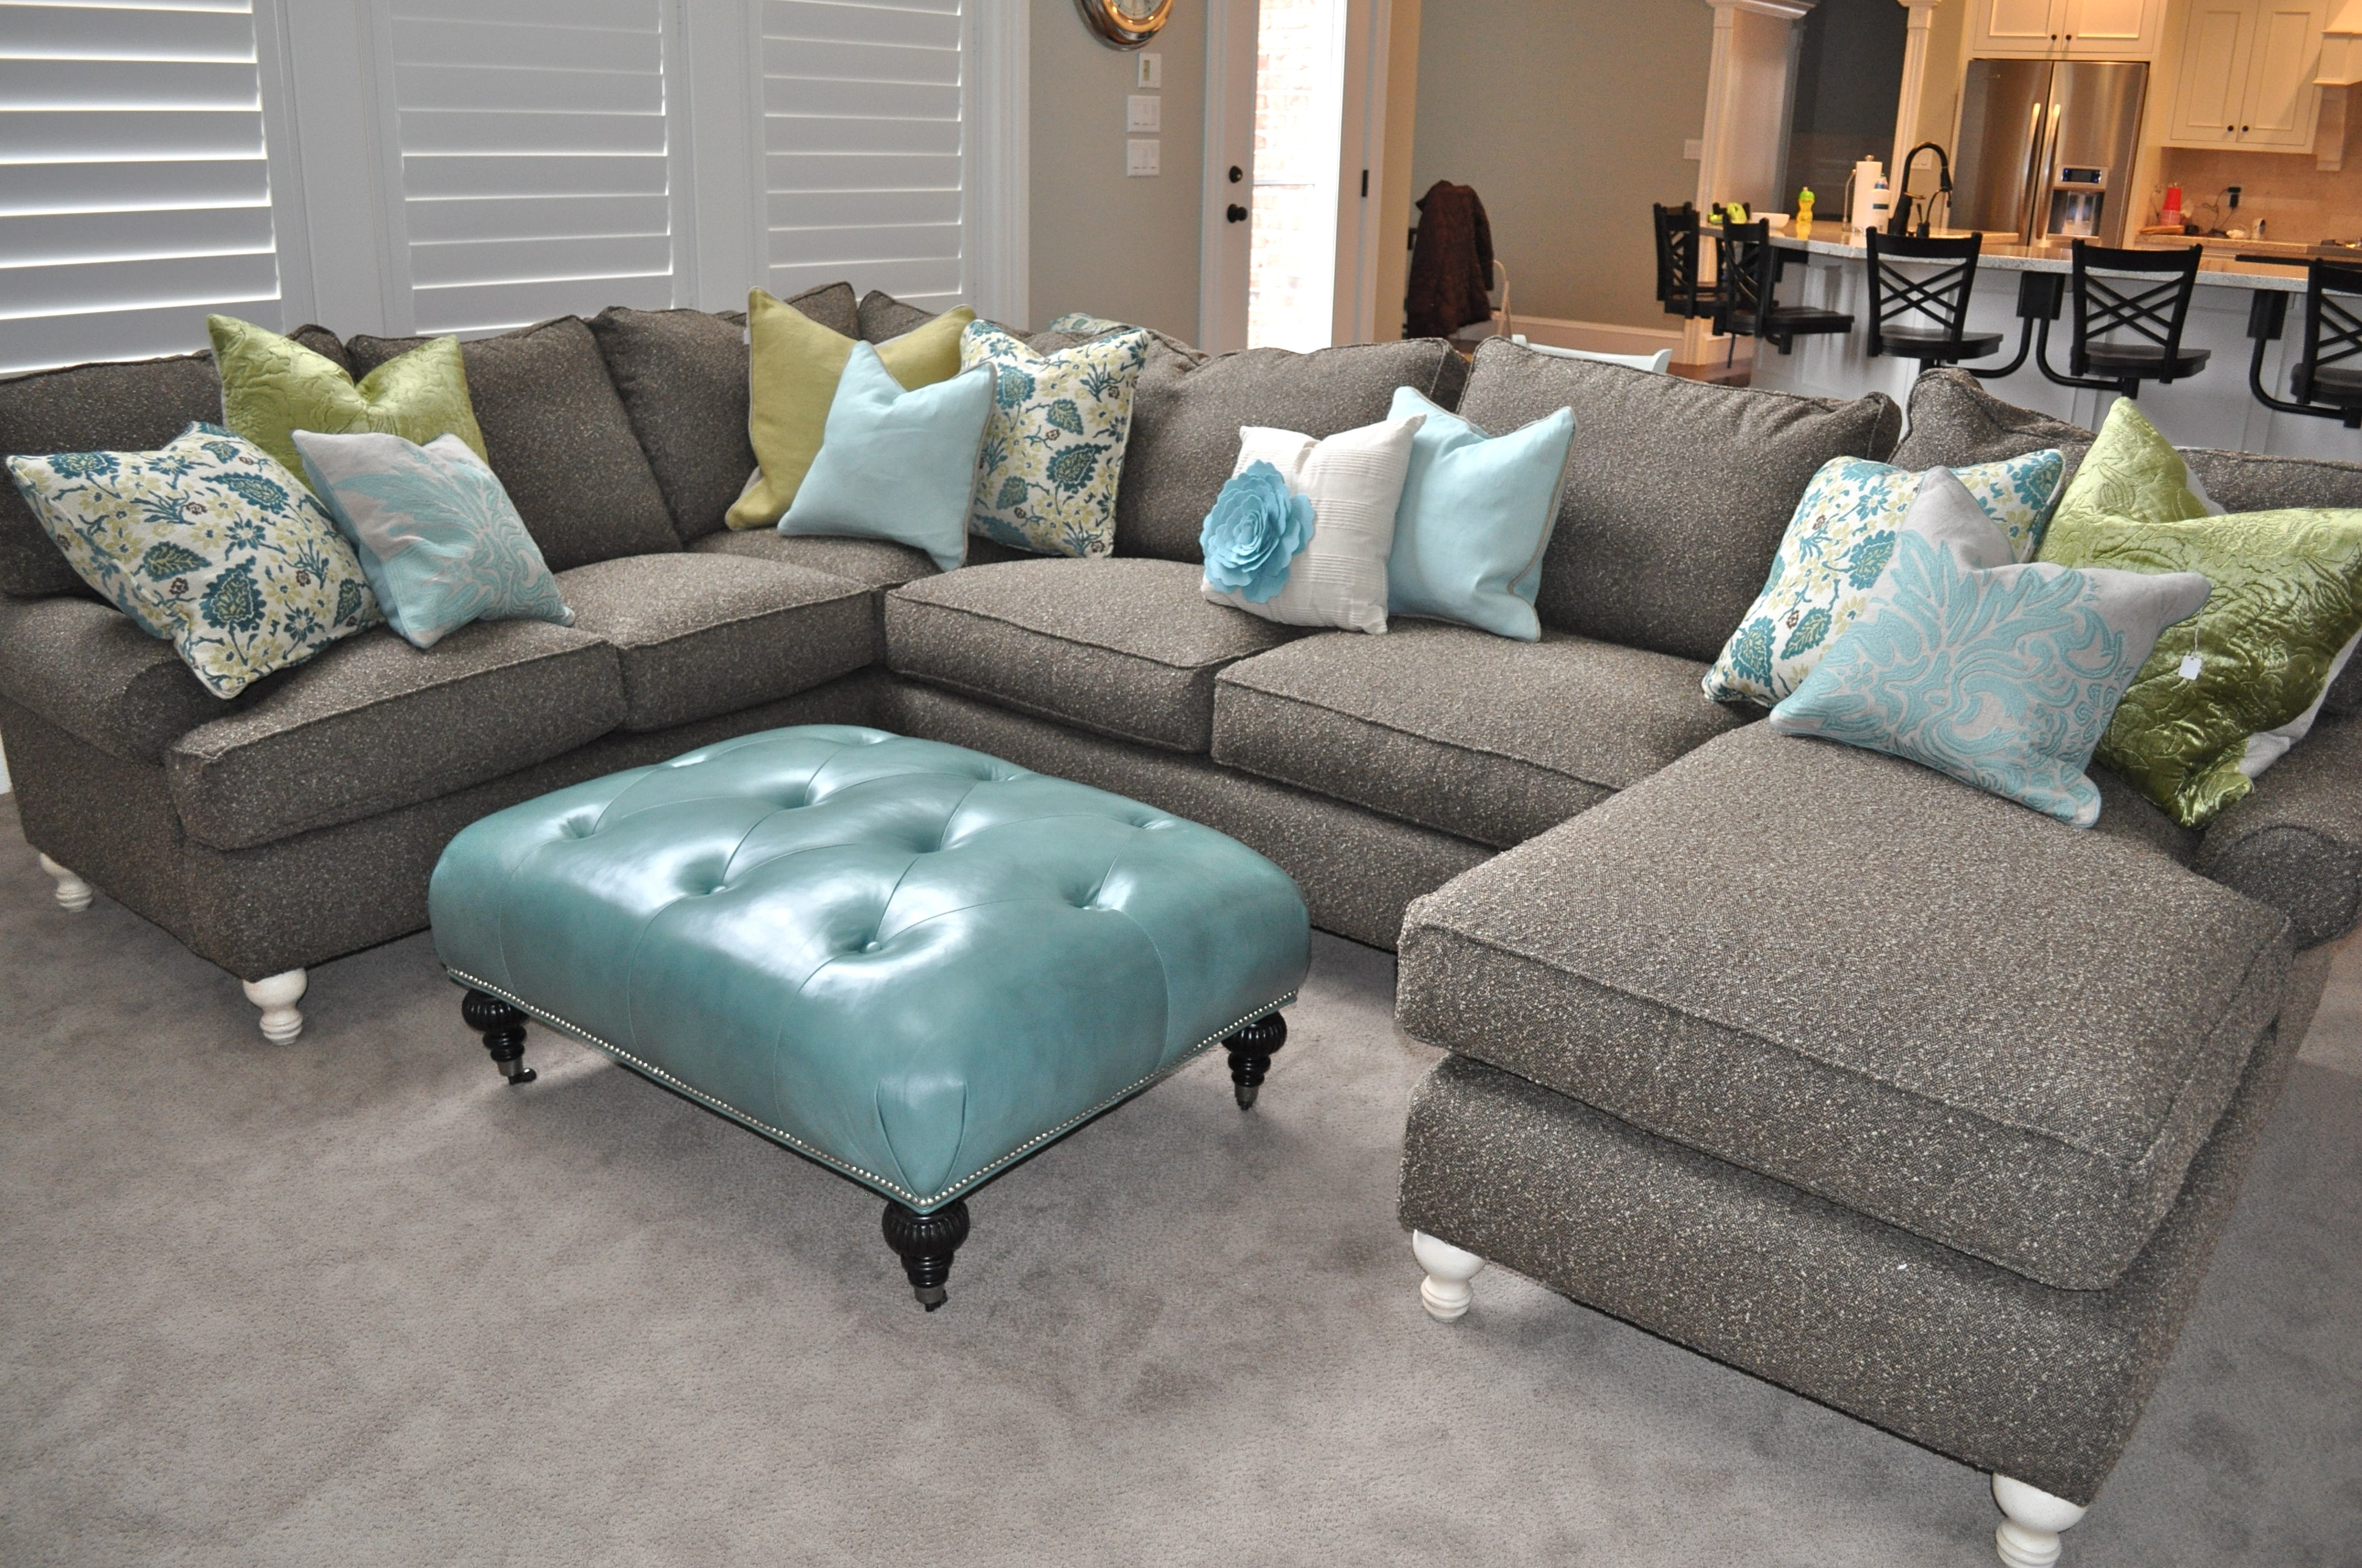 Amusing Sectional Sofa With Chaise And Ottoman 81 On Charcoal Gray Pertaining To Most Popular Grey Sectional Sofas With Chaise (View 8 of 15)